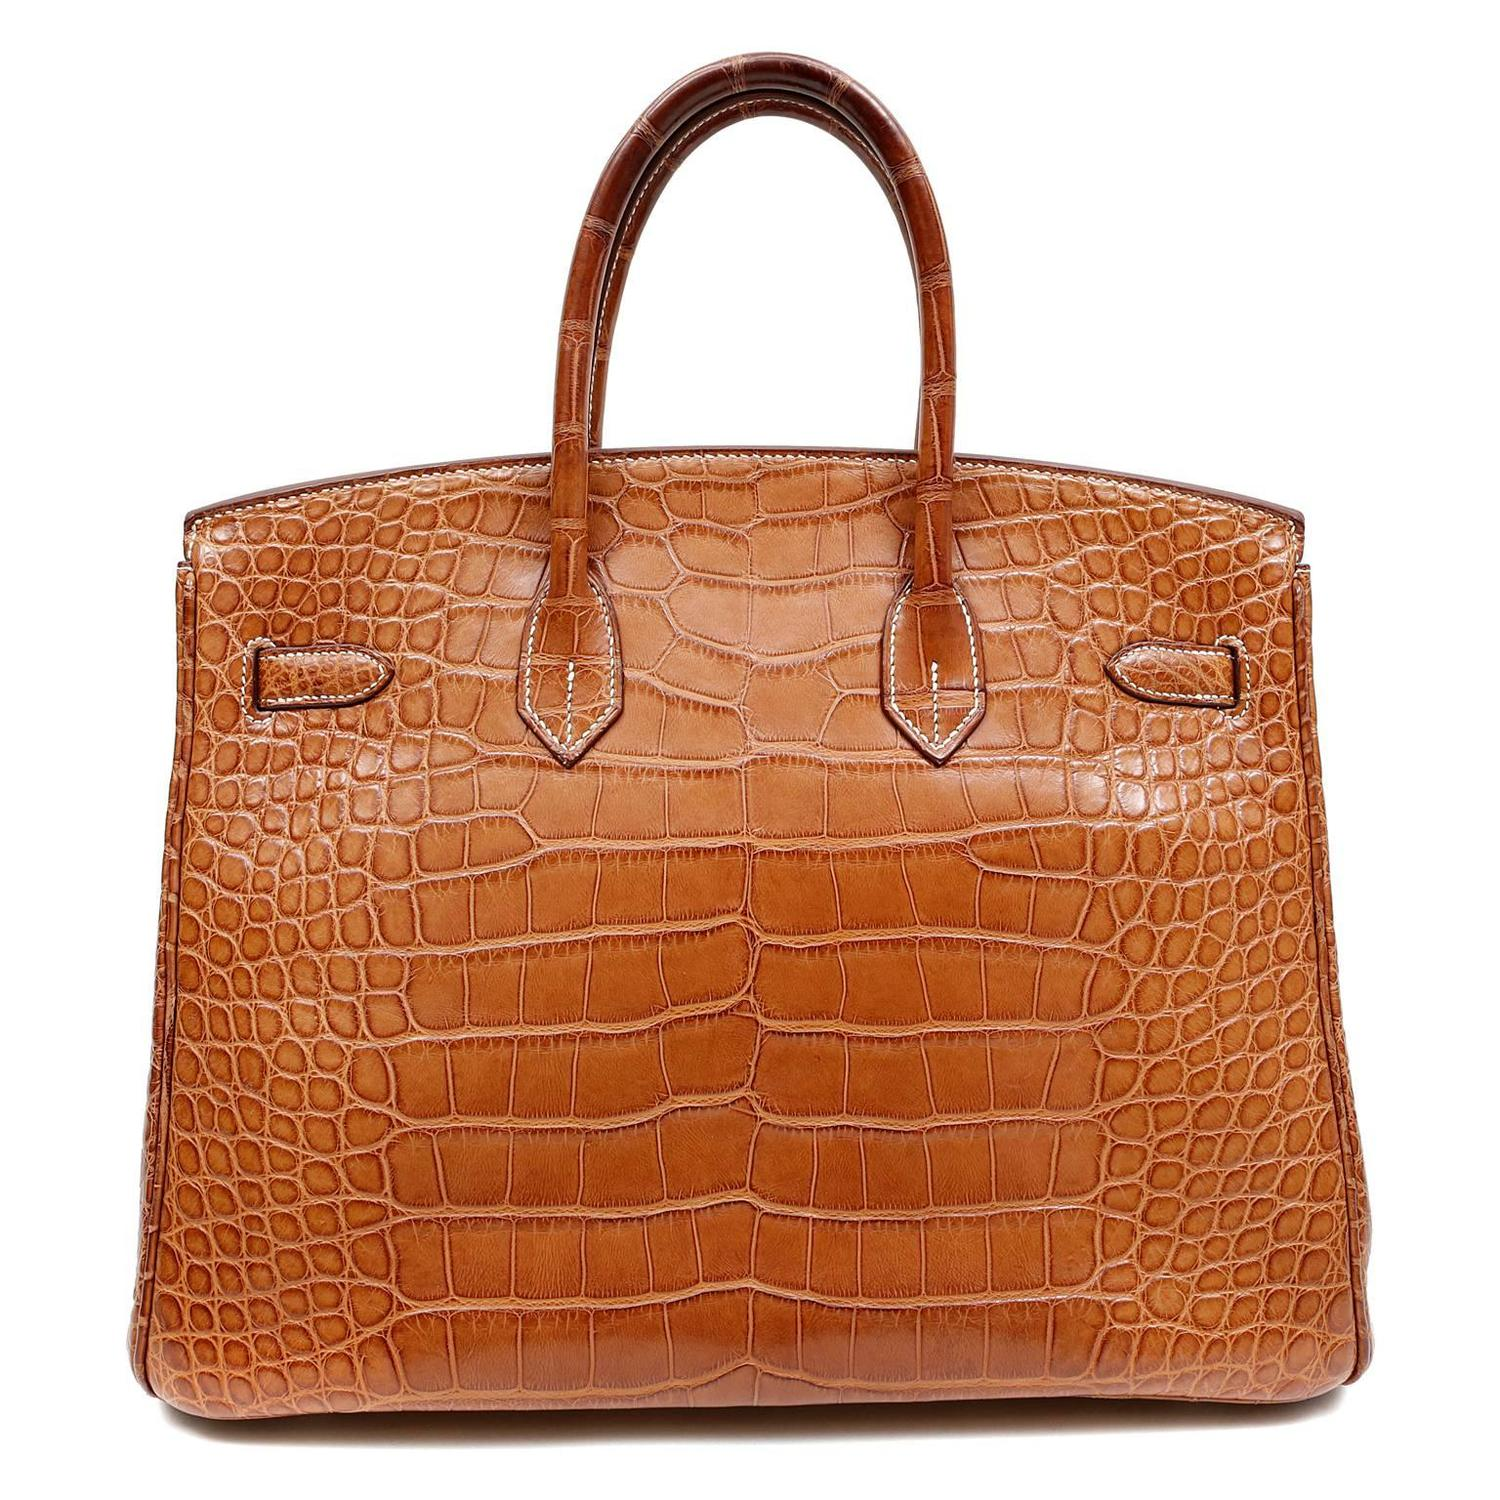 Herm��s Gold Matte Alligator Birkin Bag- 35 cm, PHW For Sale at 1stdibs